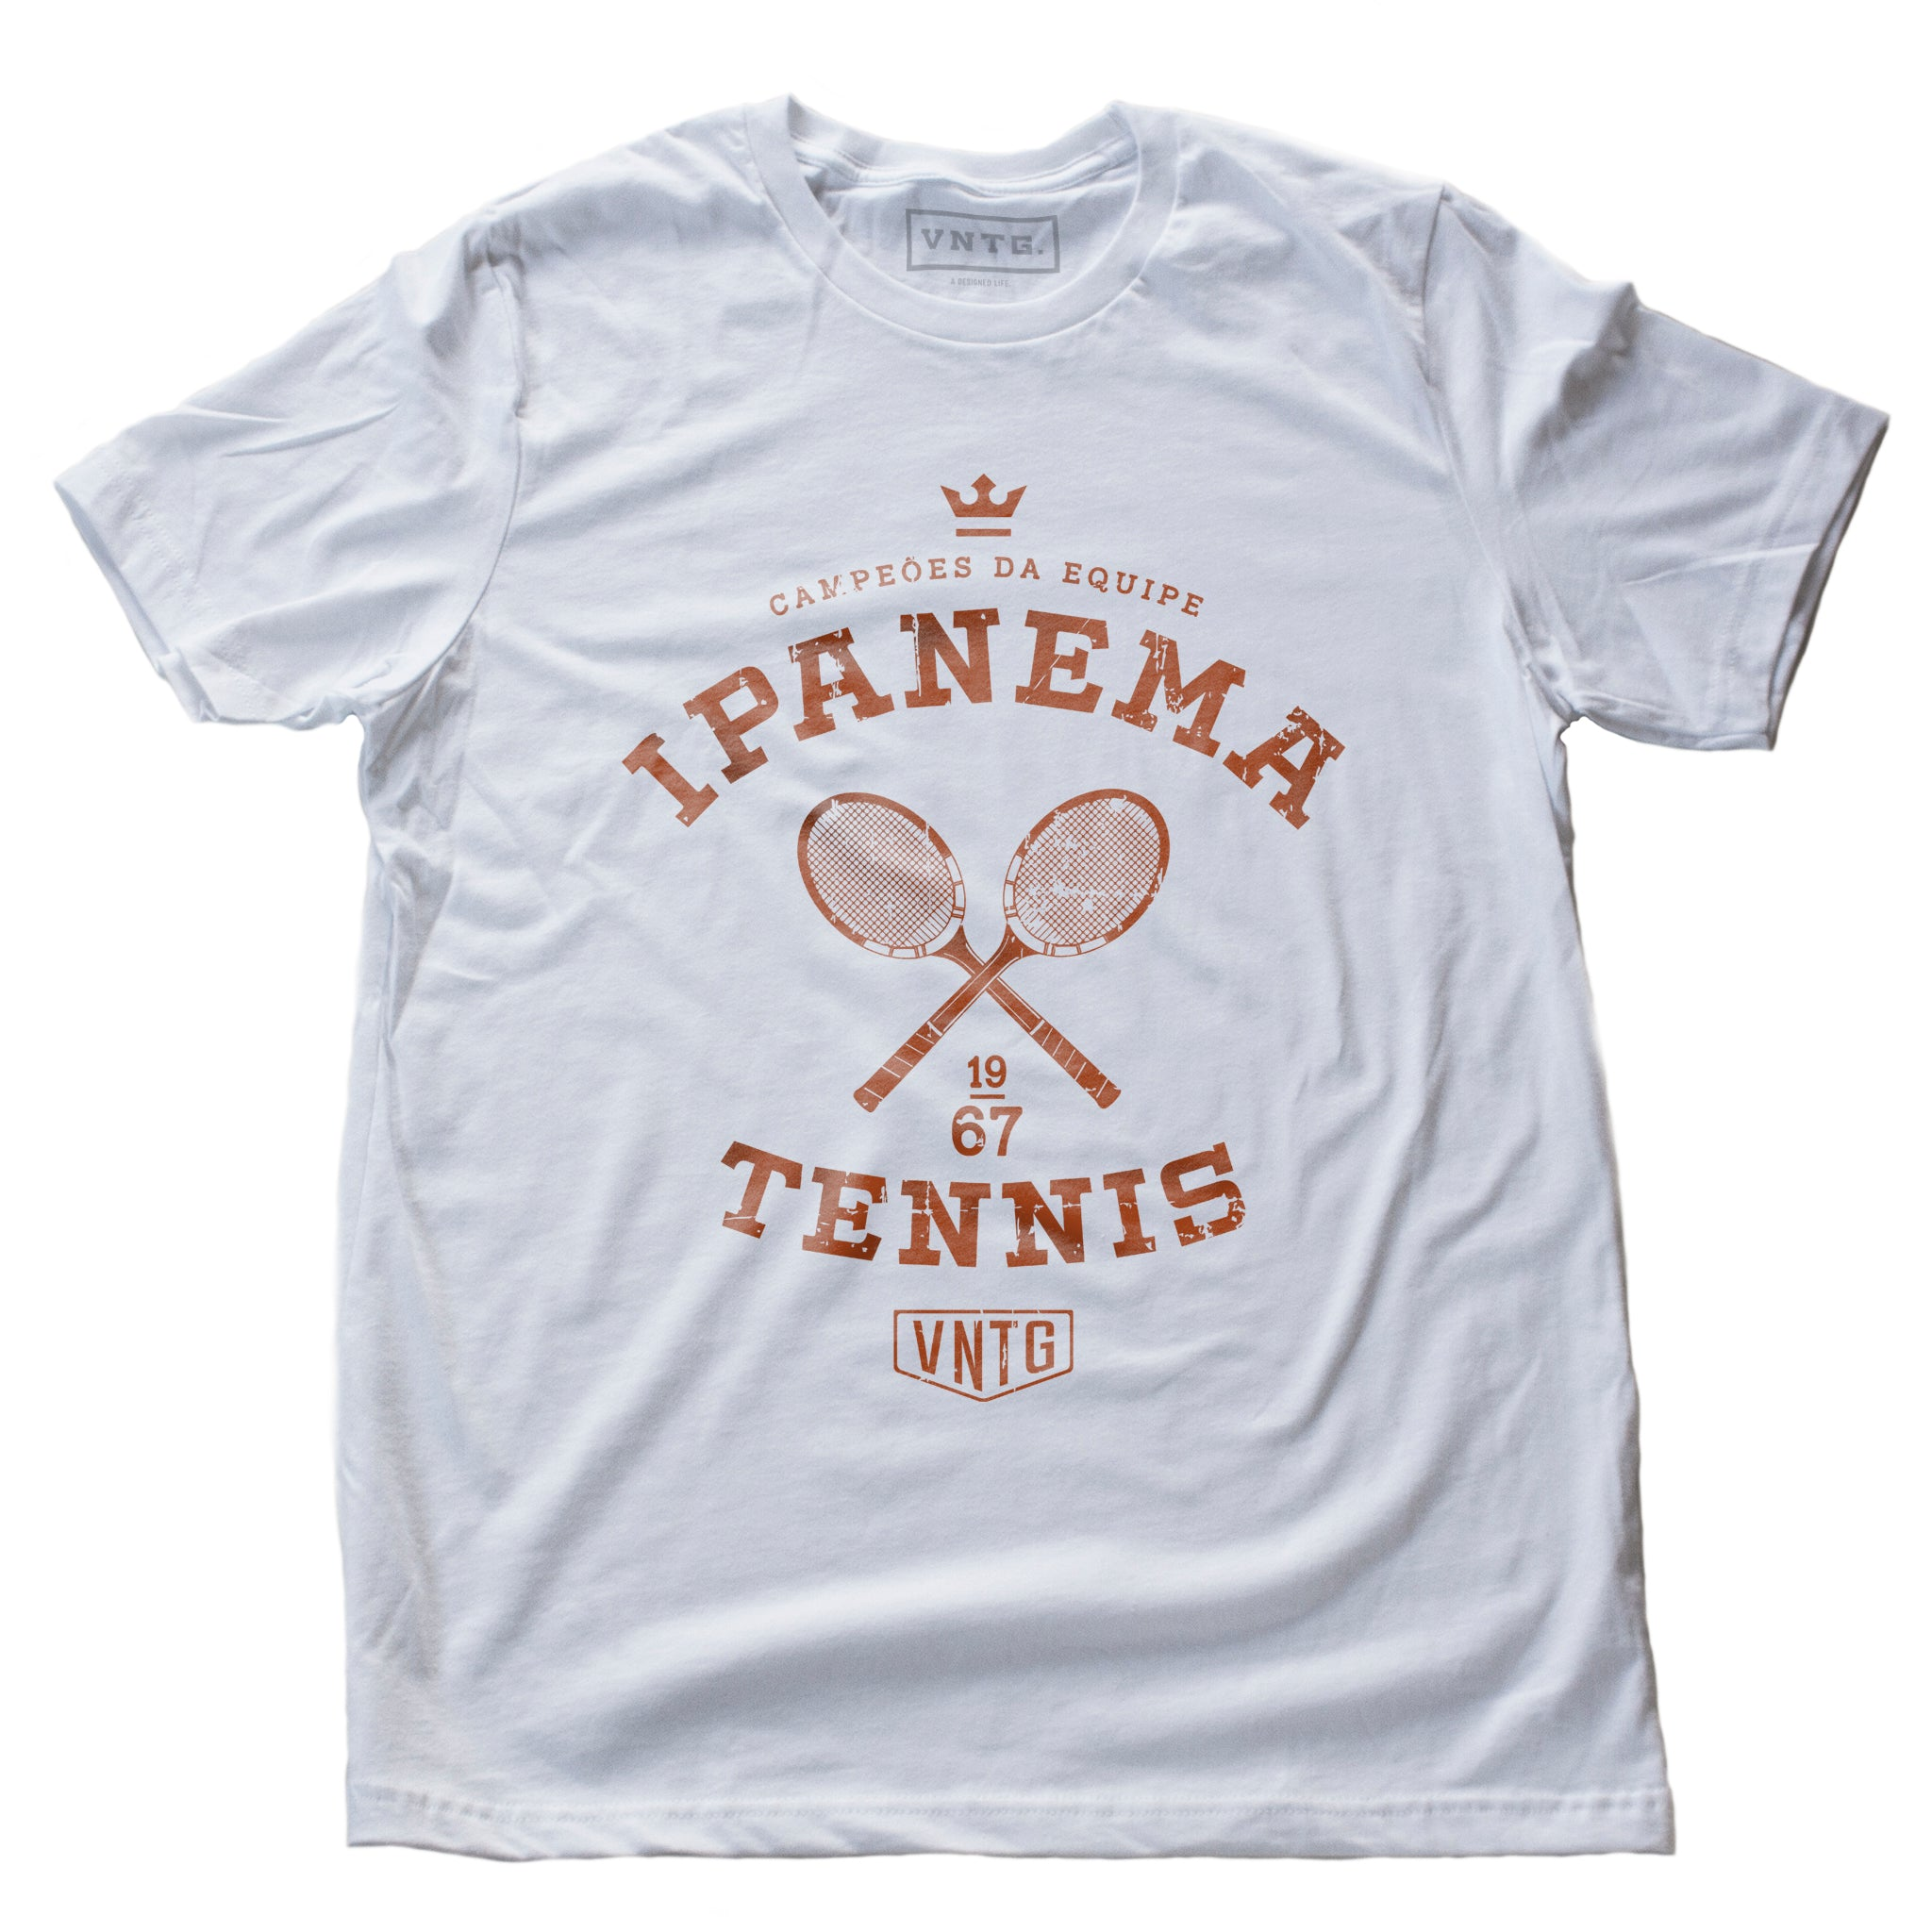 Vintage-inspired, retro graphic sports t-shirt in White and Clay, as a 'team' shirt for a fictitious tennis team championship in Ipanema, Rio de Janeiro, Brazil. By fashion brand VNTG., from wolfsaint.net